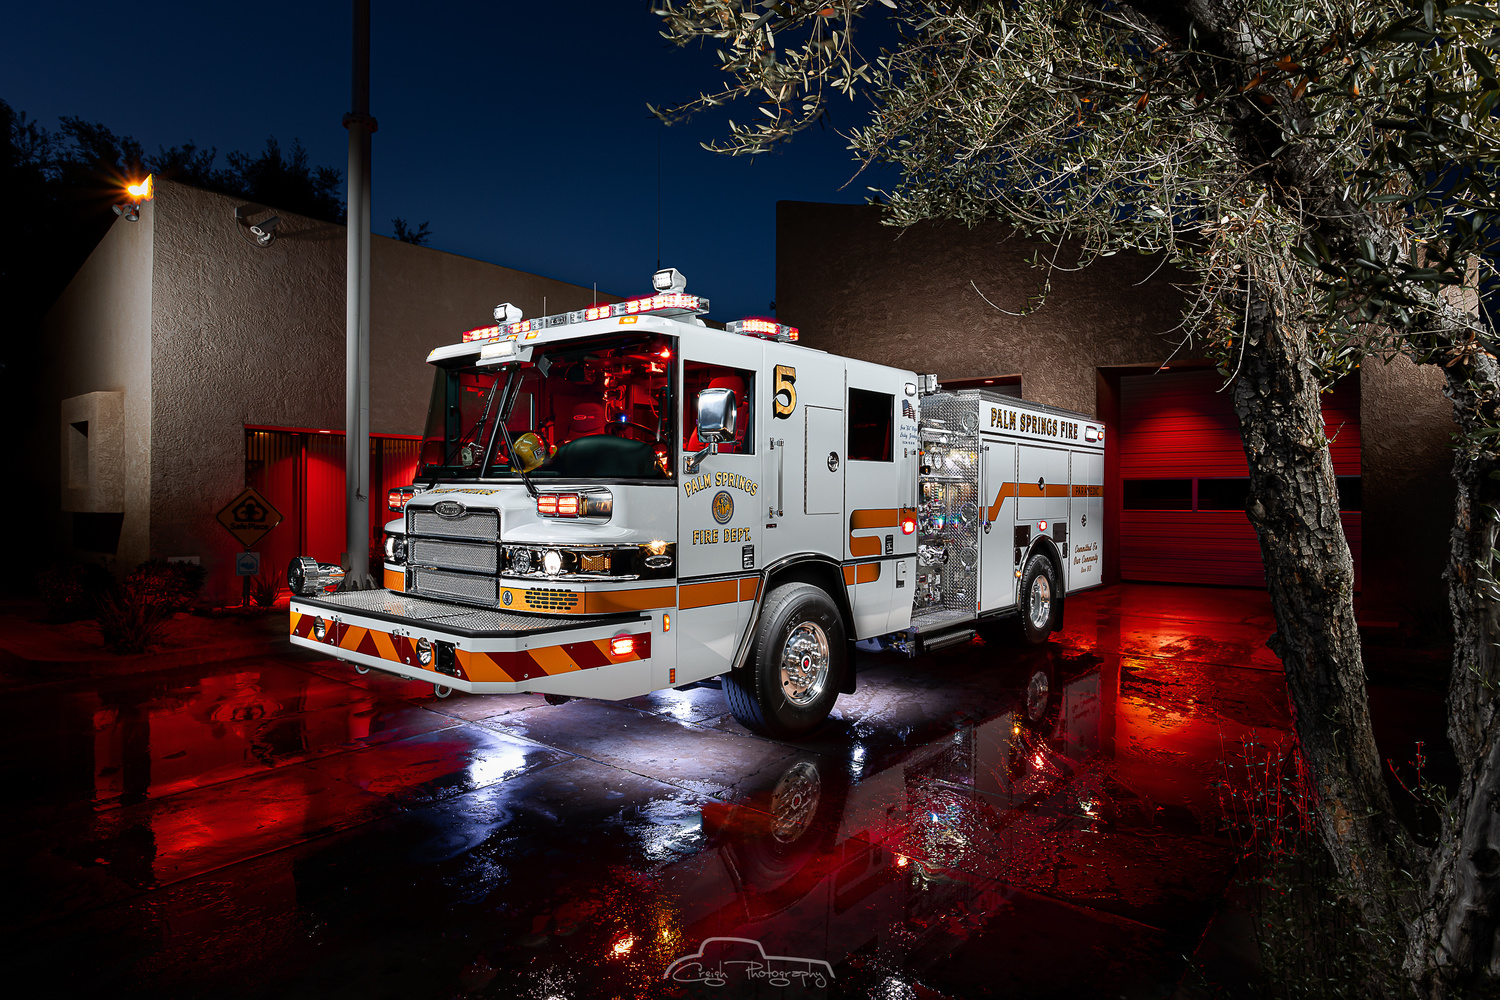 Palm Springs Fire Engine 5 by Creigh McIntyre